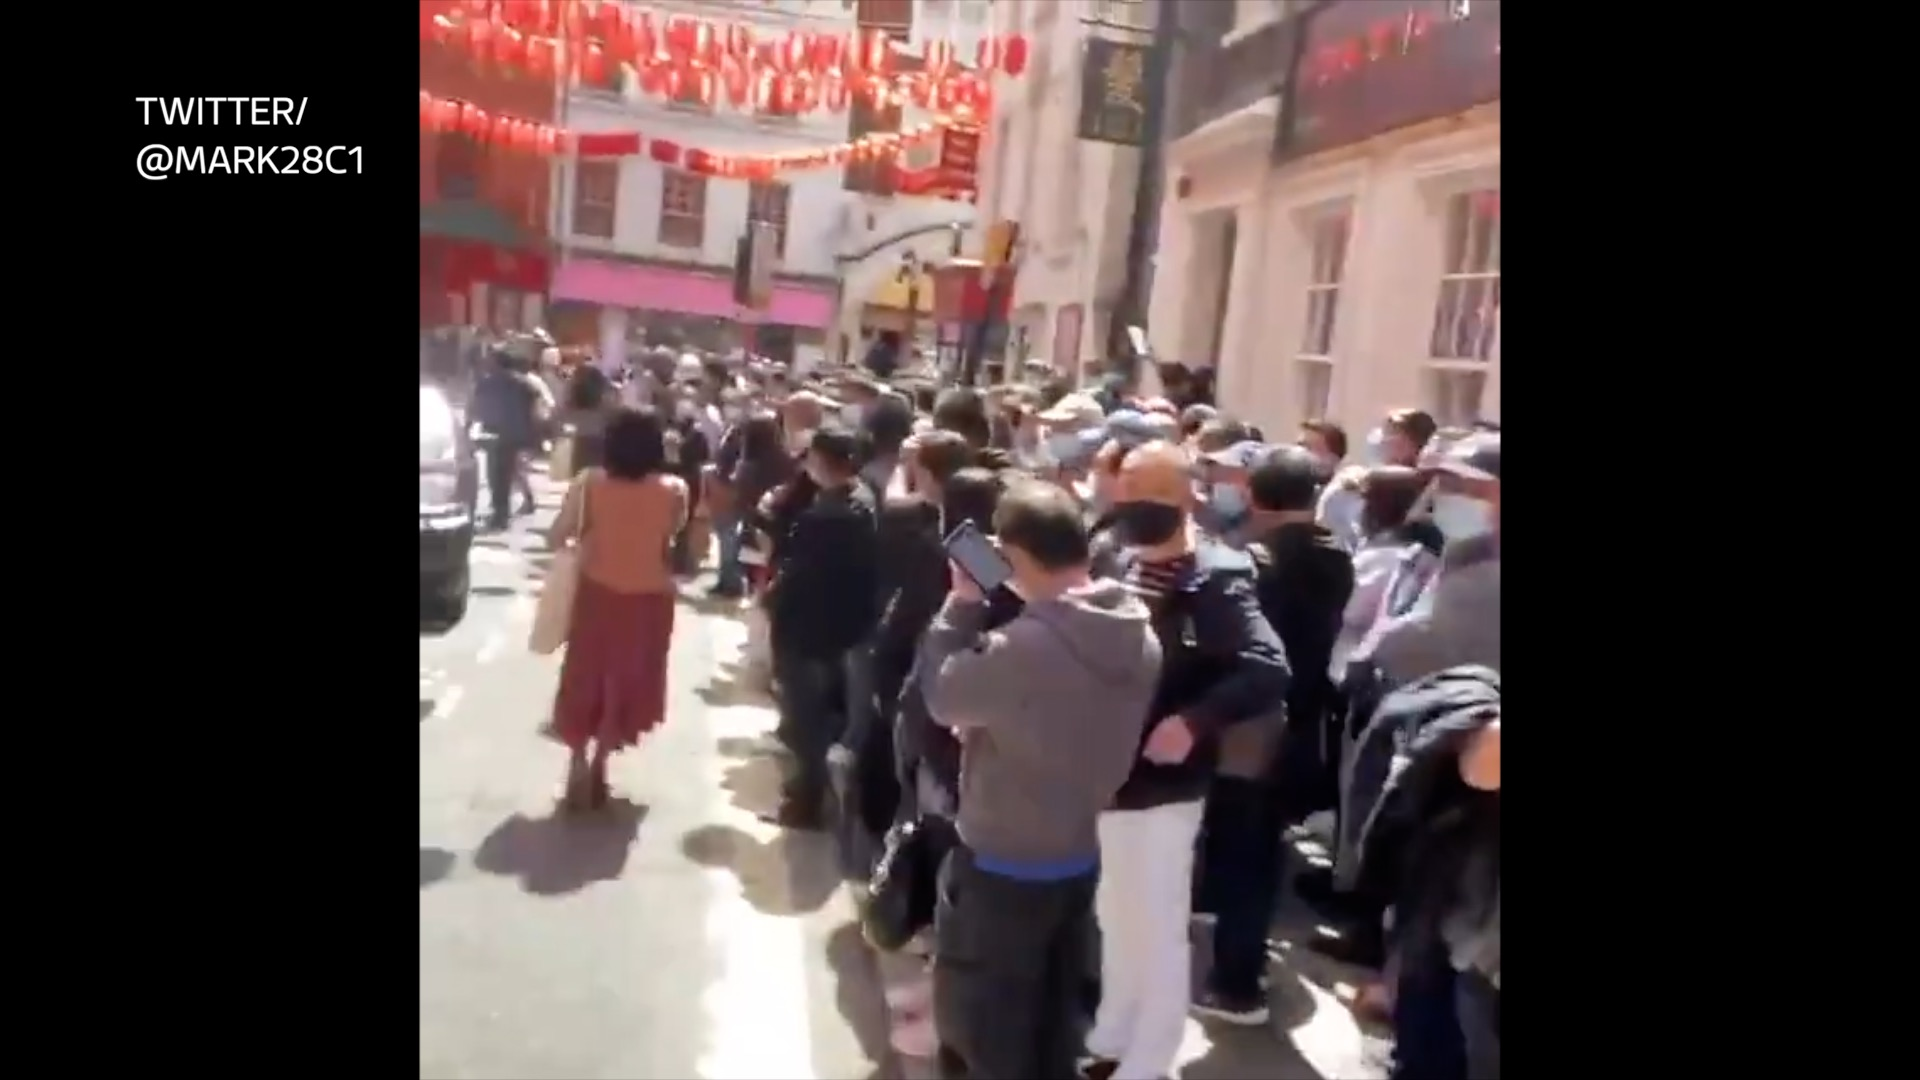 Huge crowd packs into London's Chinatown for 'no questions asked' jab